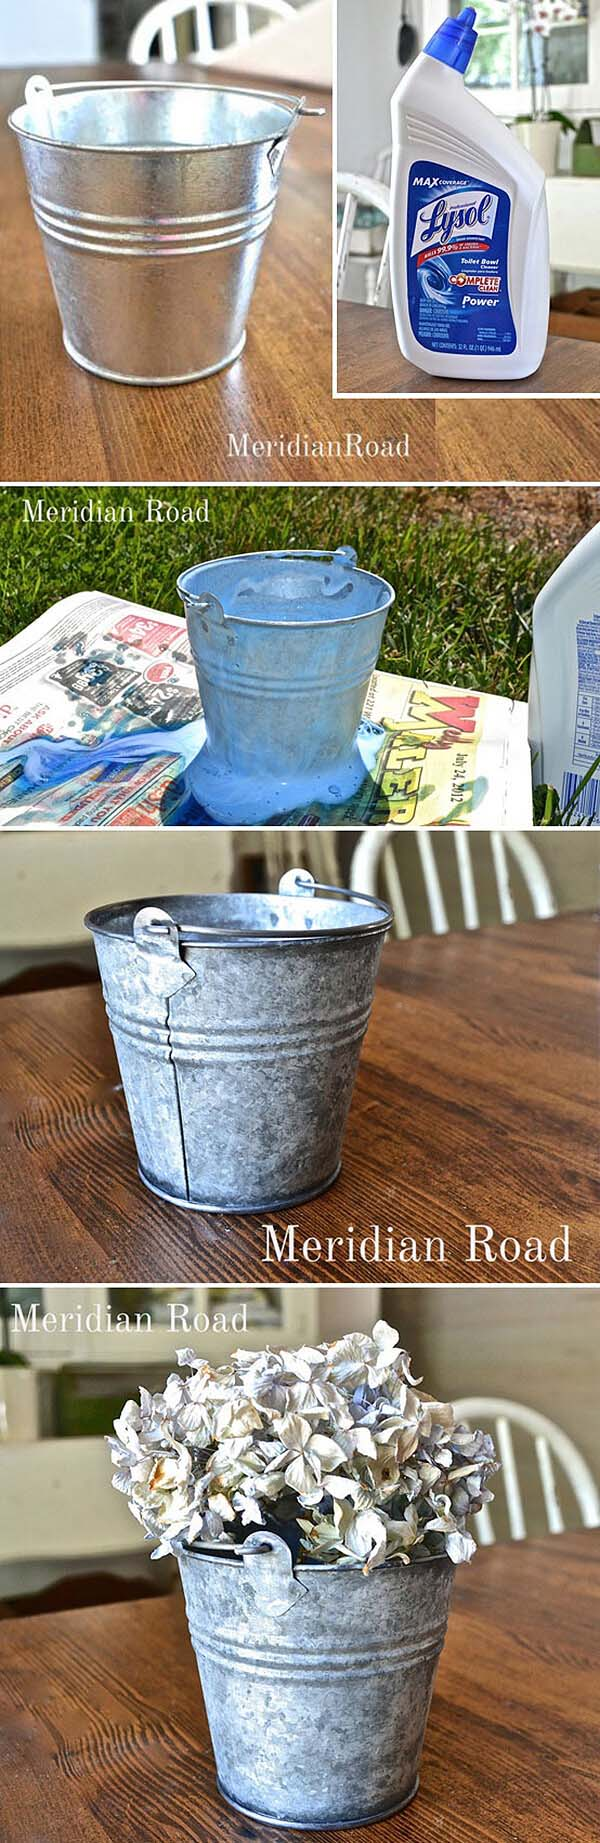 Table Decorations Featuring Rustic Buckets #galvanized #tub #bucket #decorhomeideas